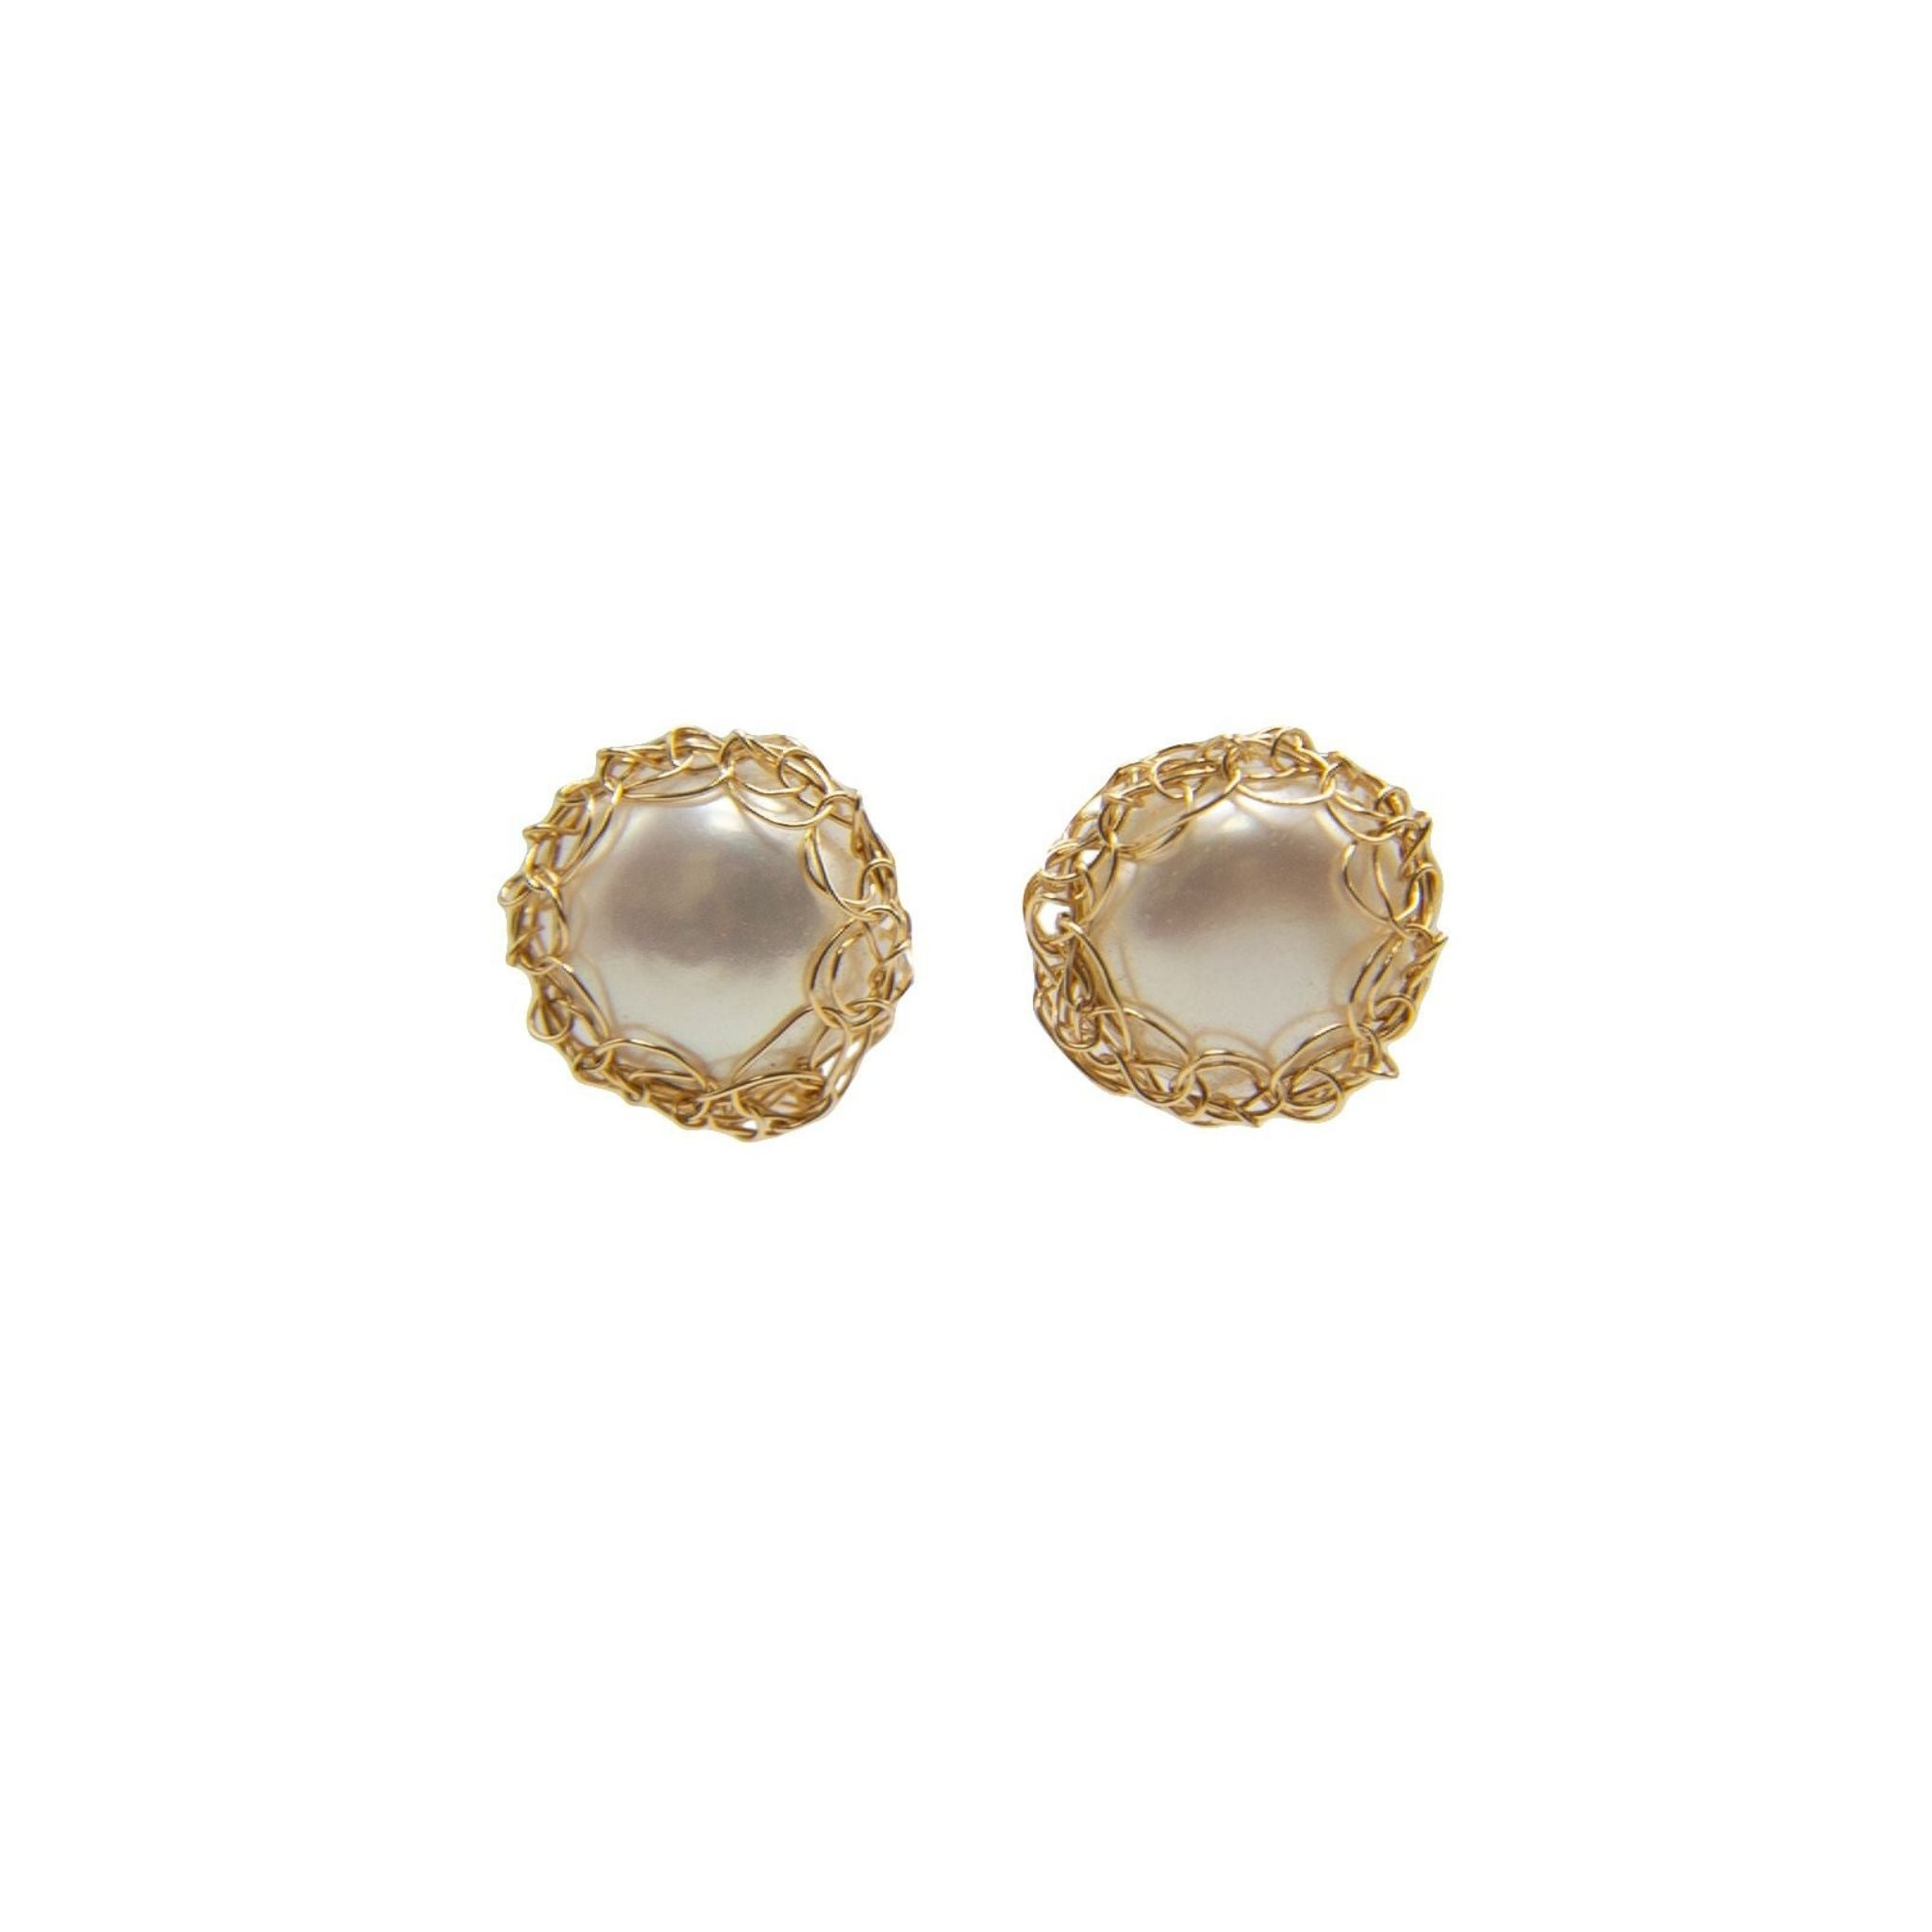 Gemma Pearl Stud Earrings - shop idPearl